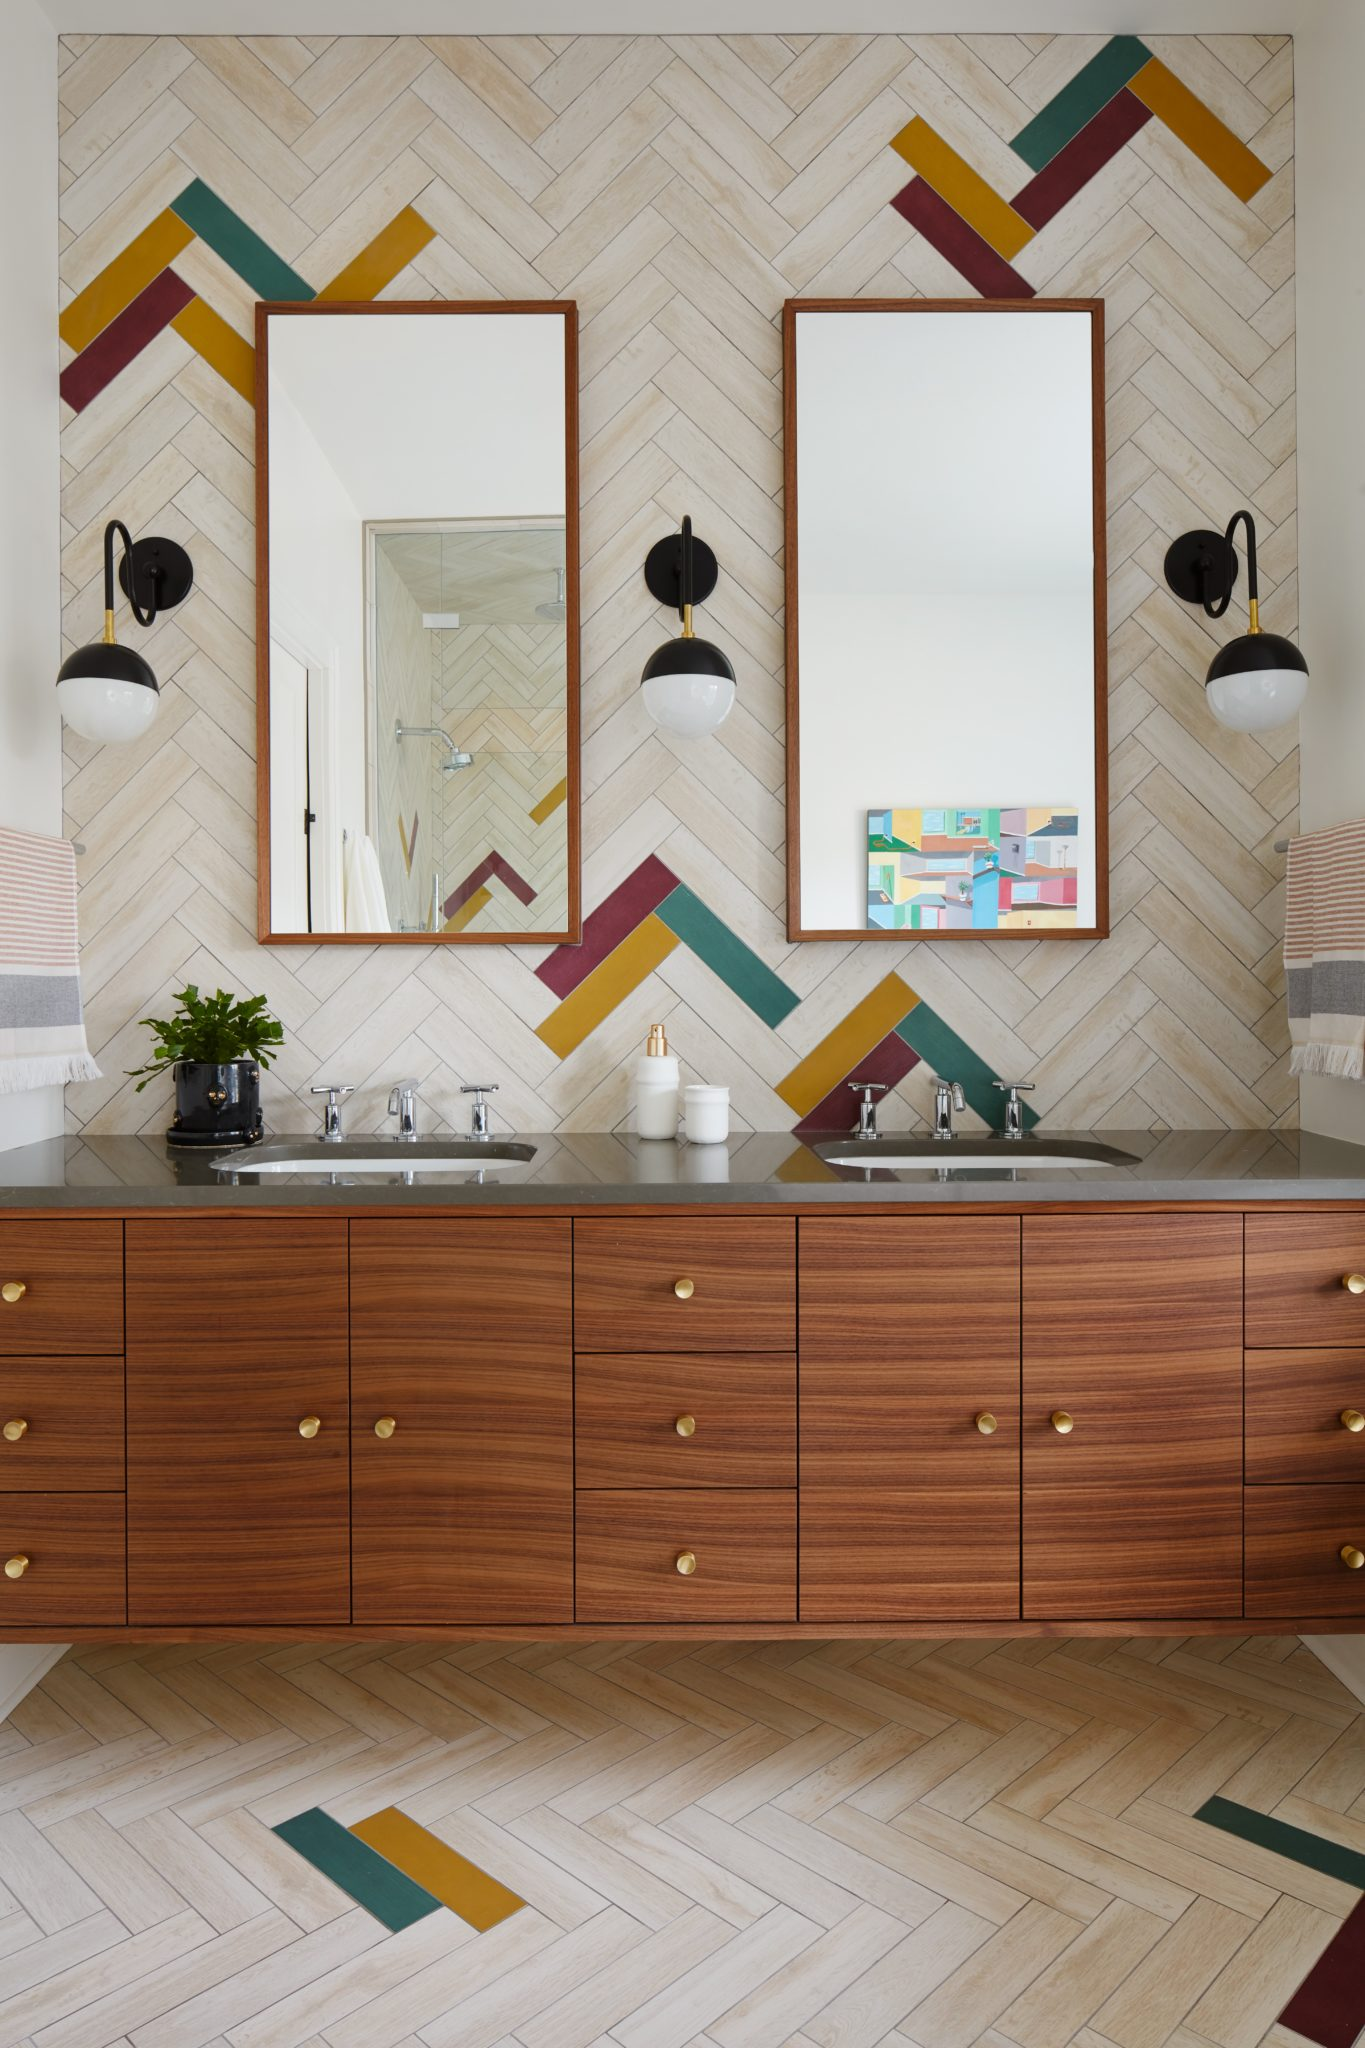 Evanston Master Bath with Colorful Tiles, Patterned Tiles and Walnut Cabinet by 2to5 Design